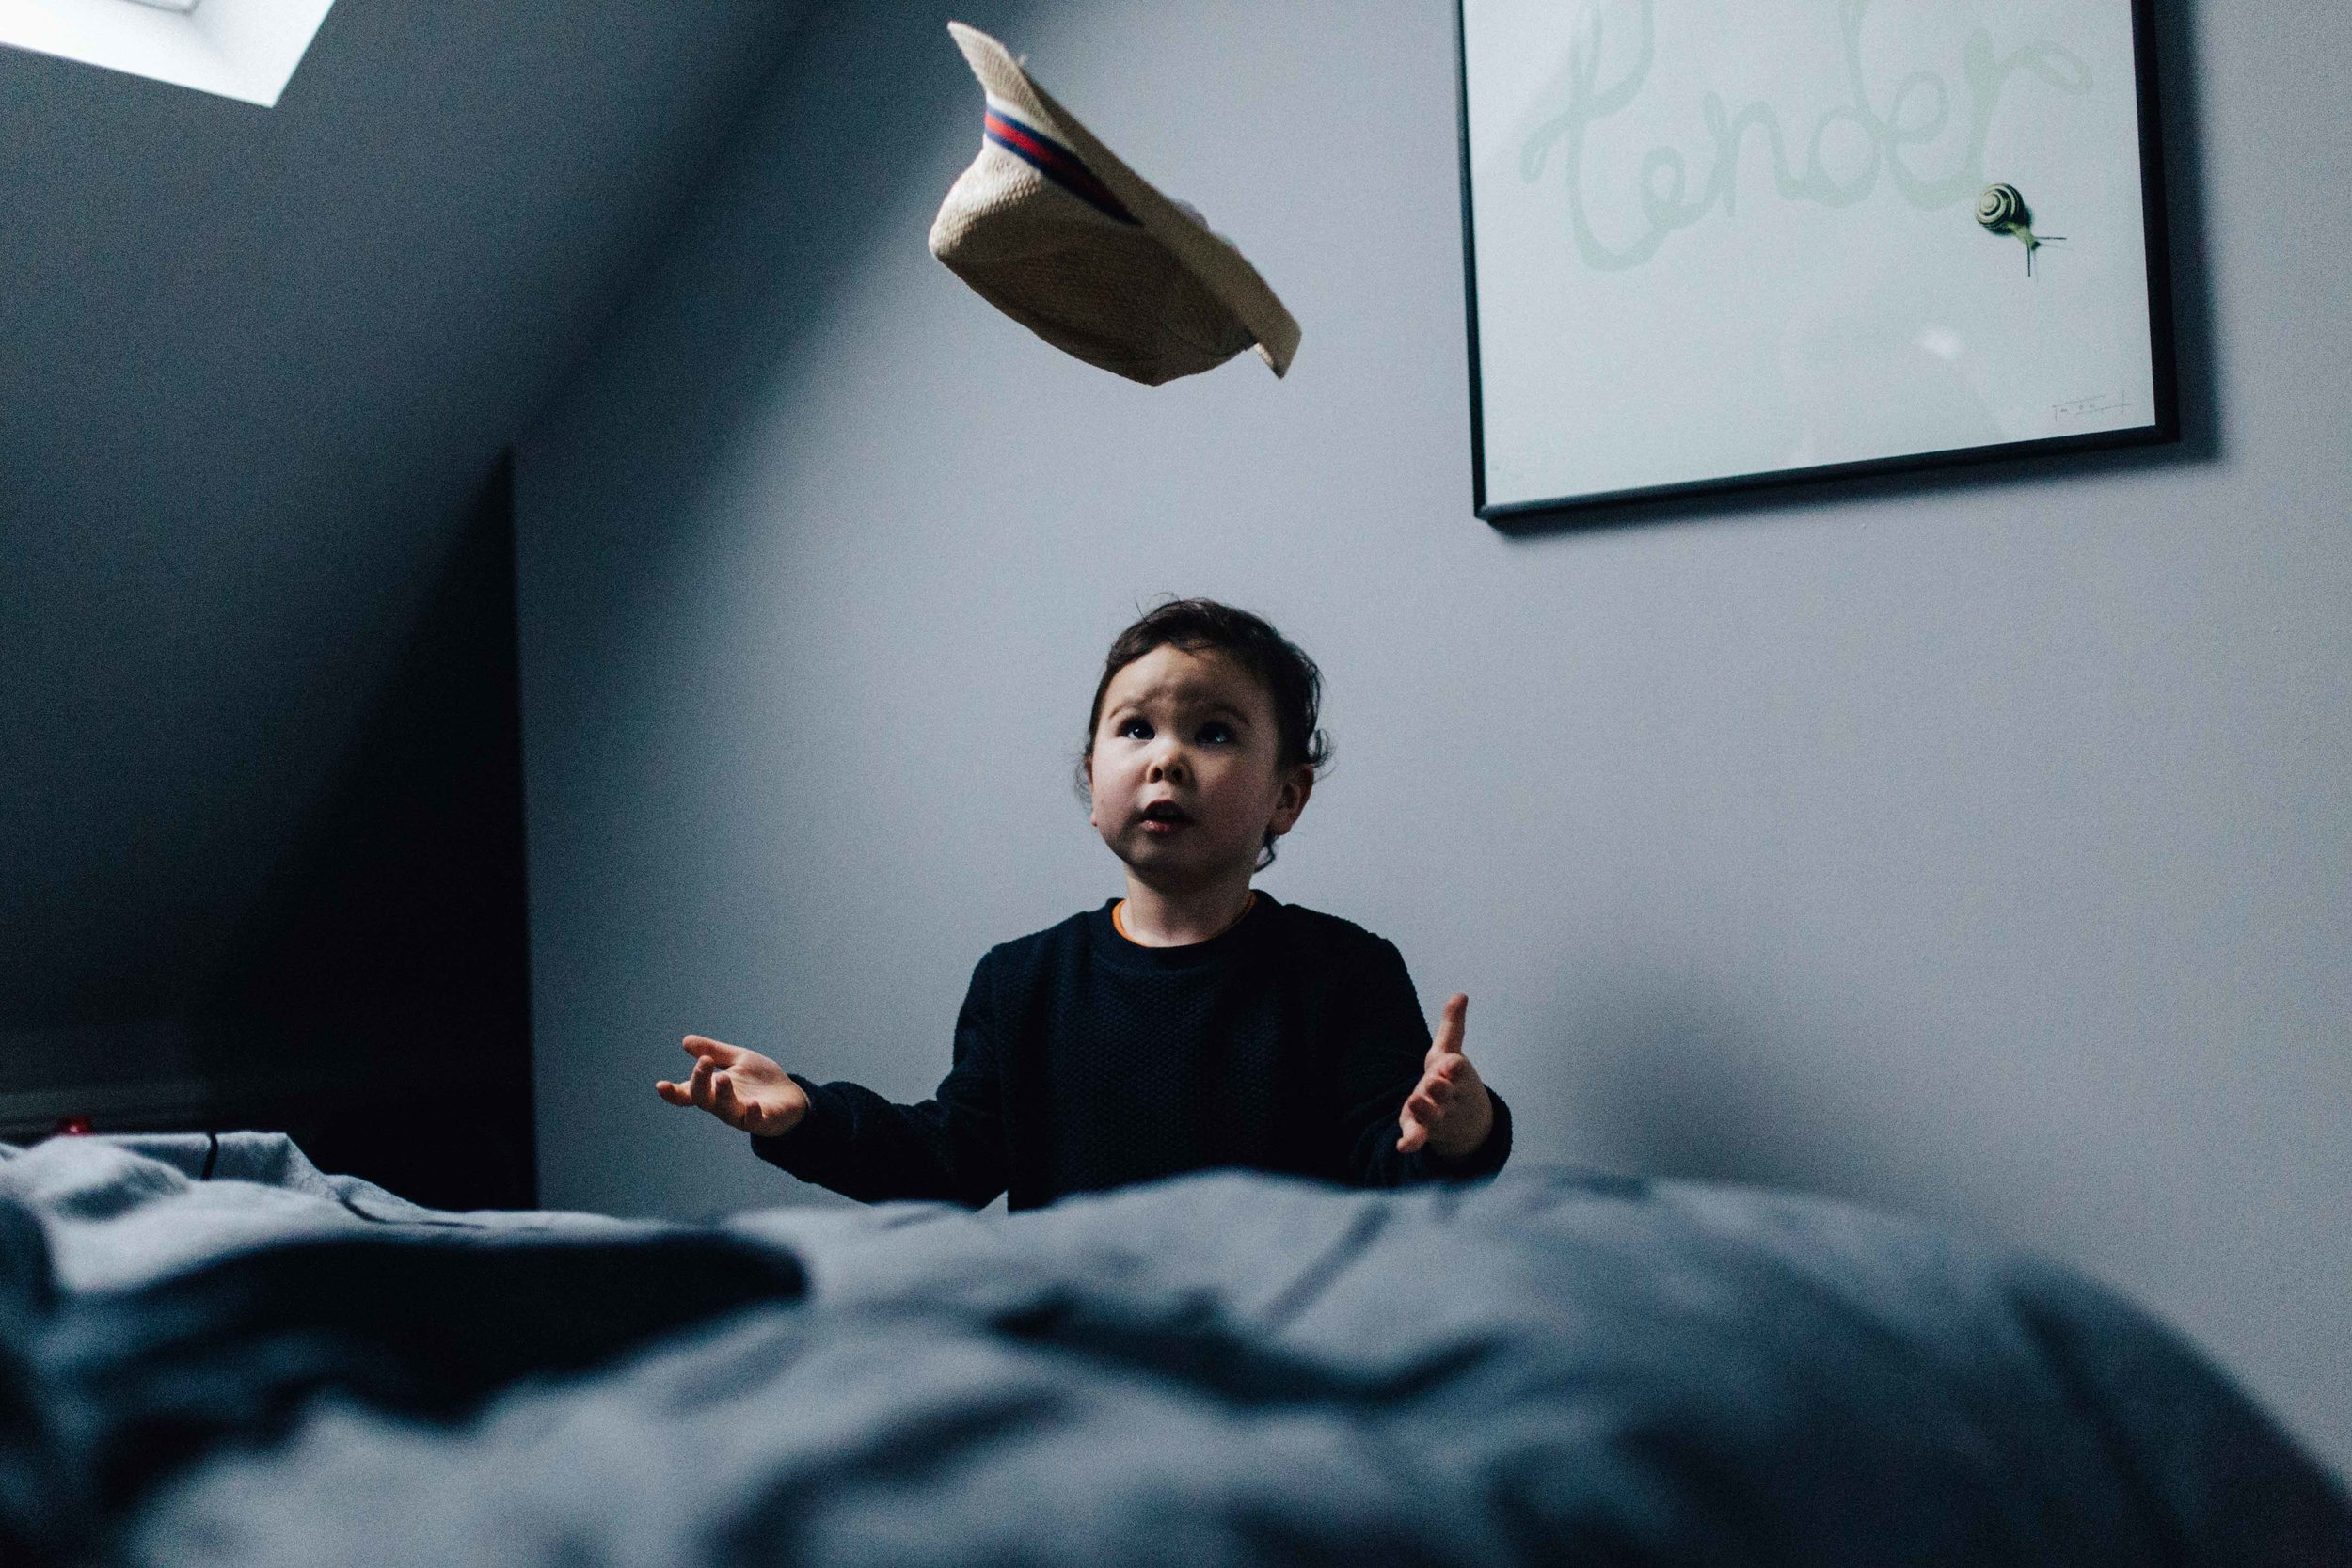 Boy throwing hat in the air